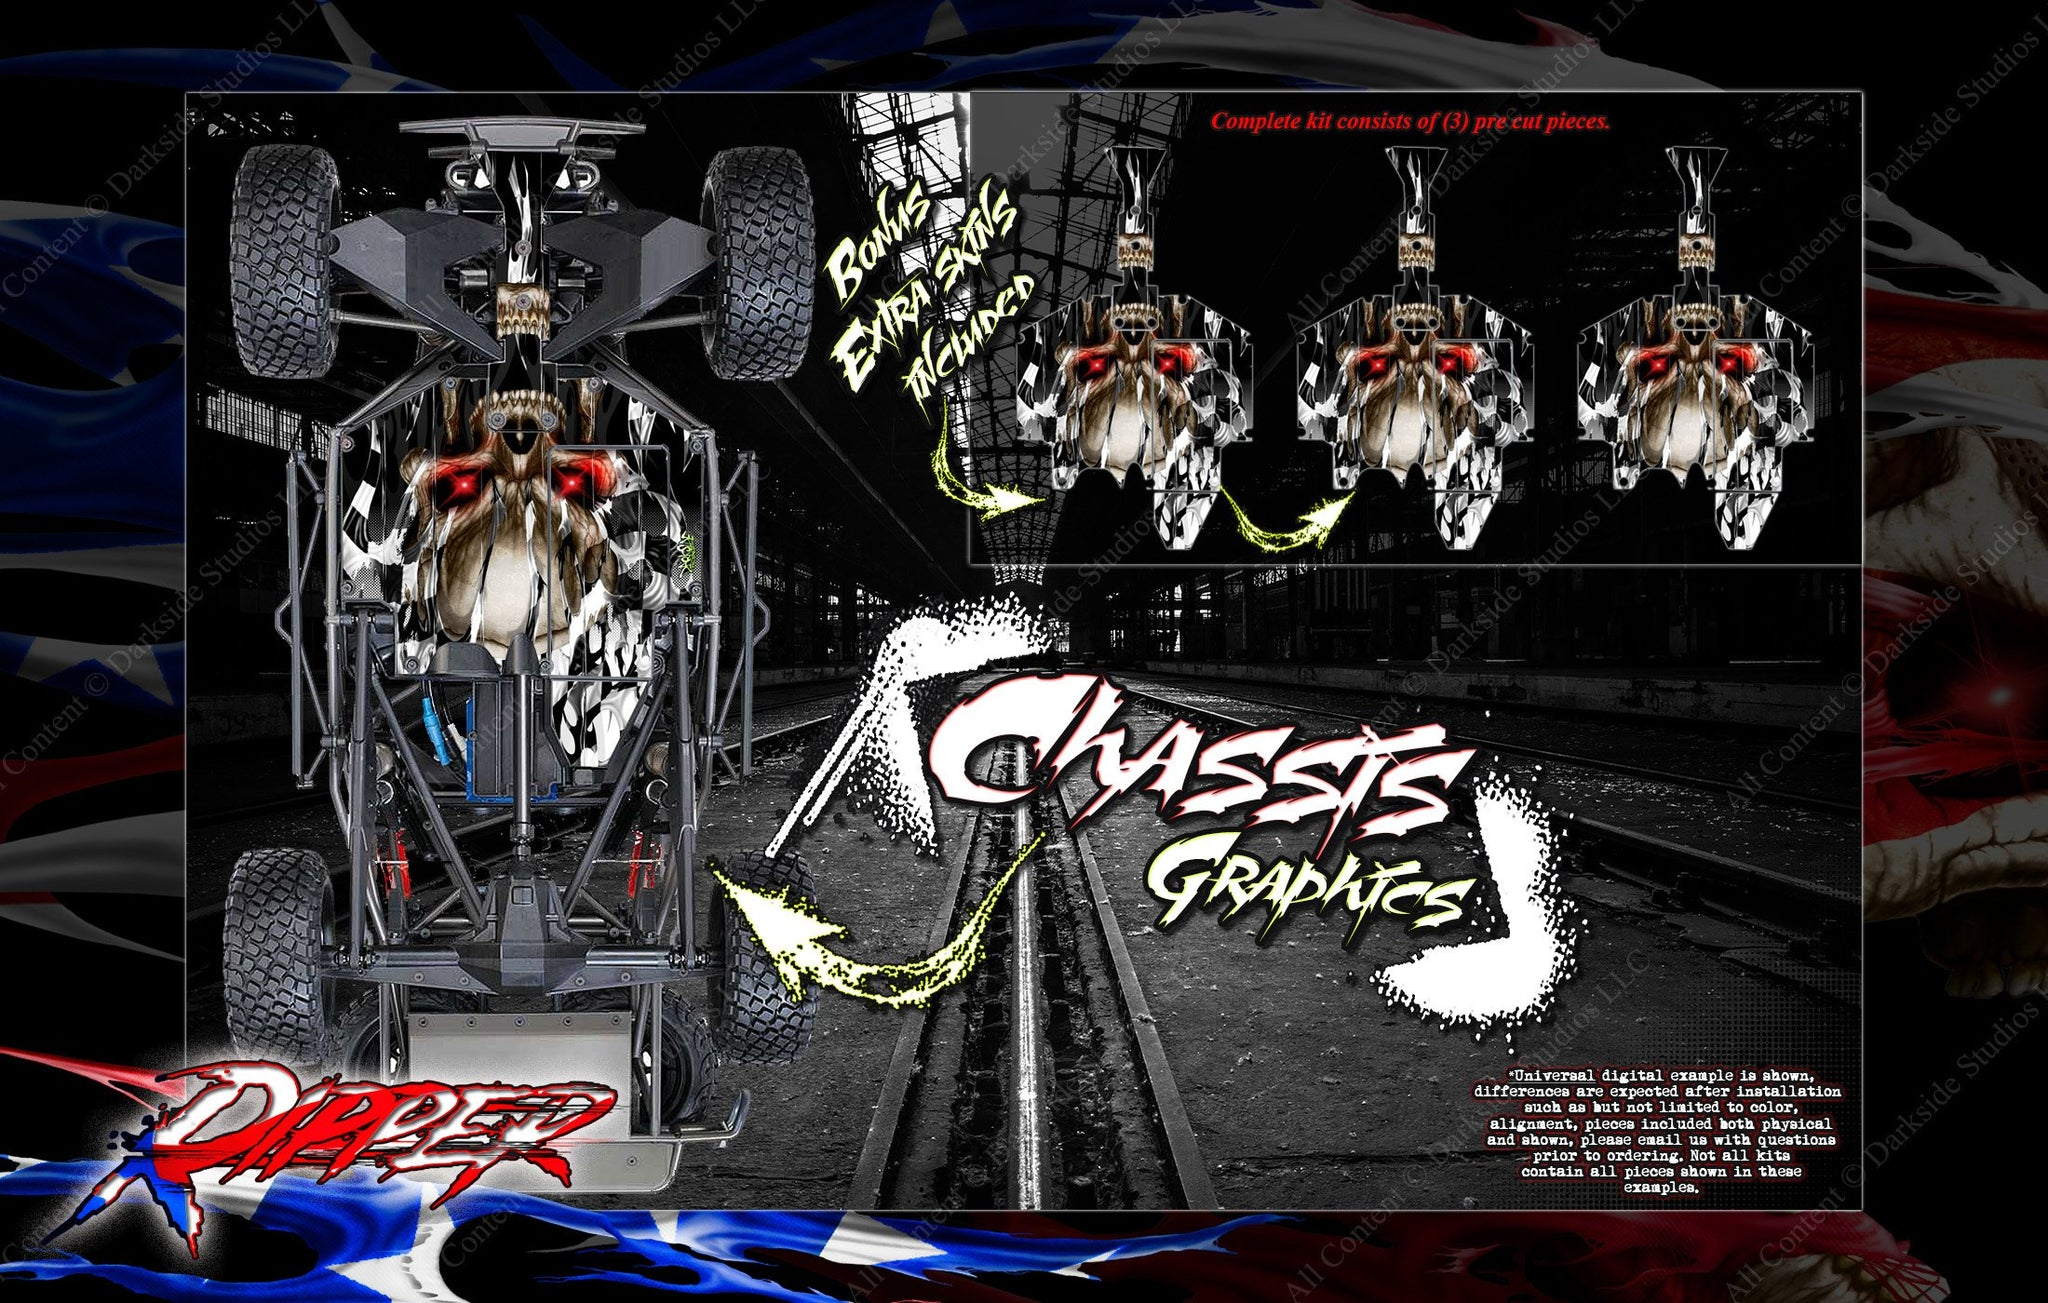 RIPPER WRAP TRAXXAS UNLIMITED DESERT RACER HOP-UP SKIN WITH CHASSIS CAGE DECALS